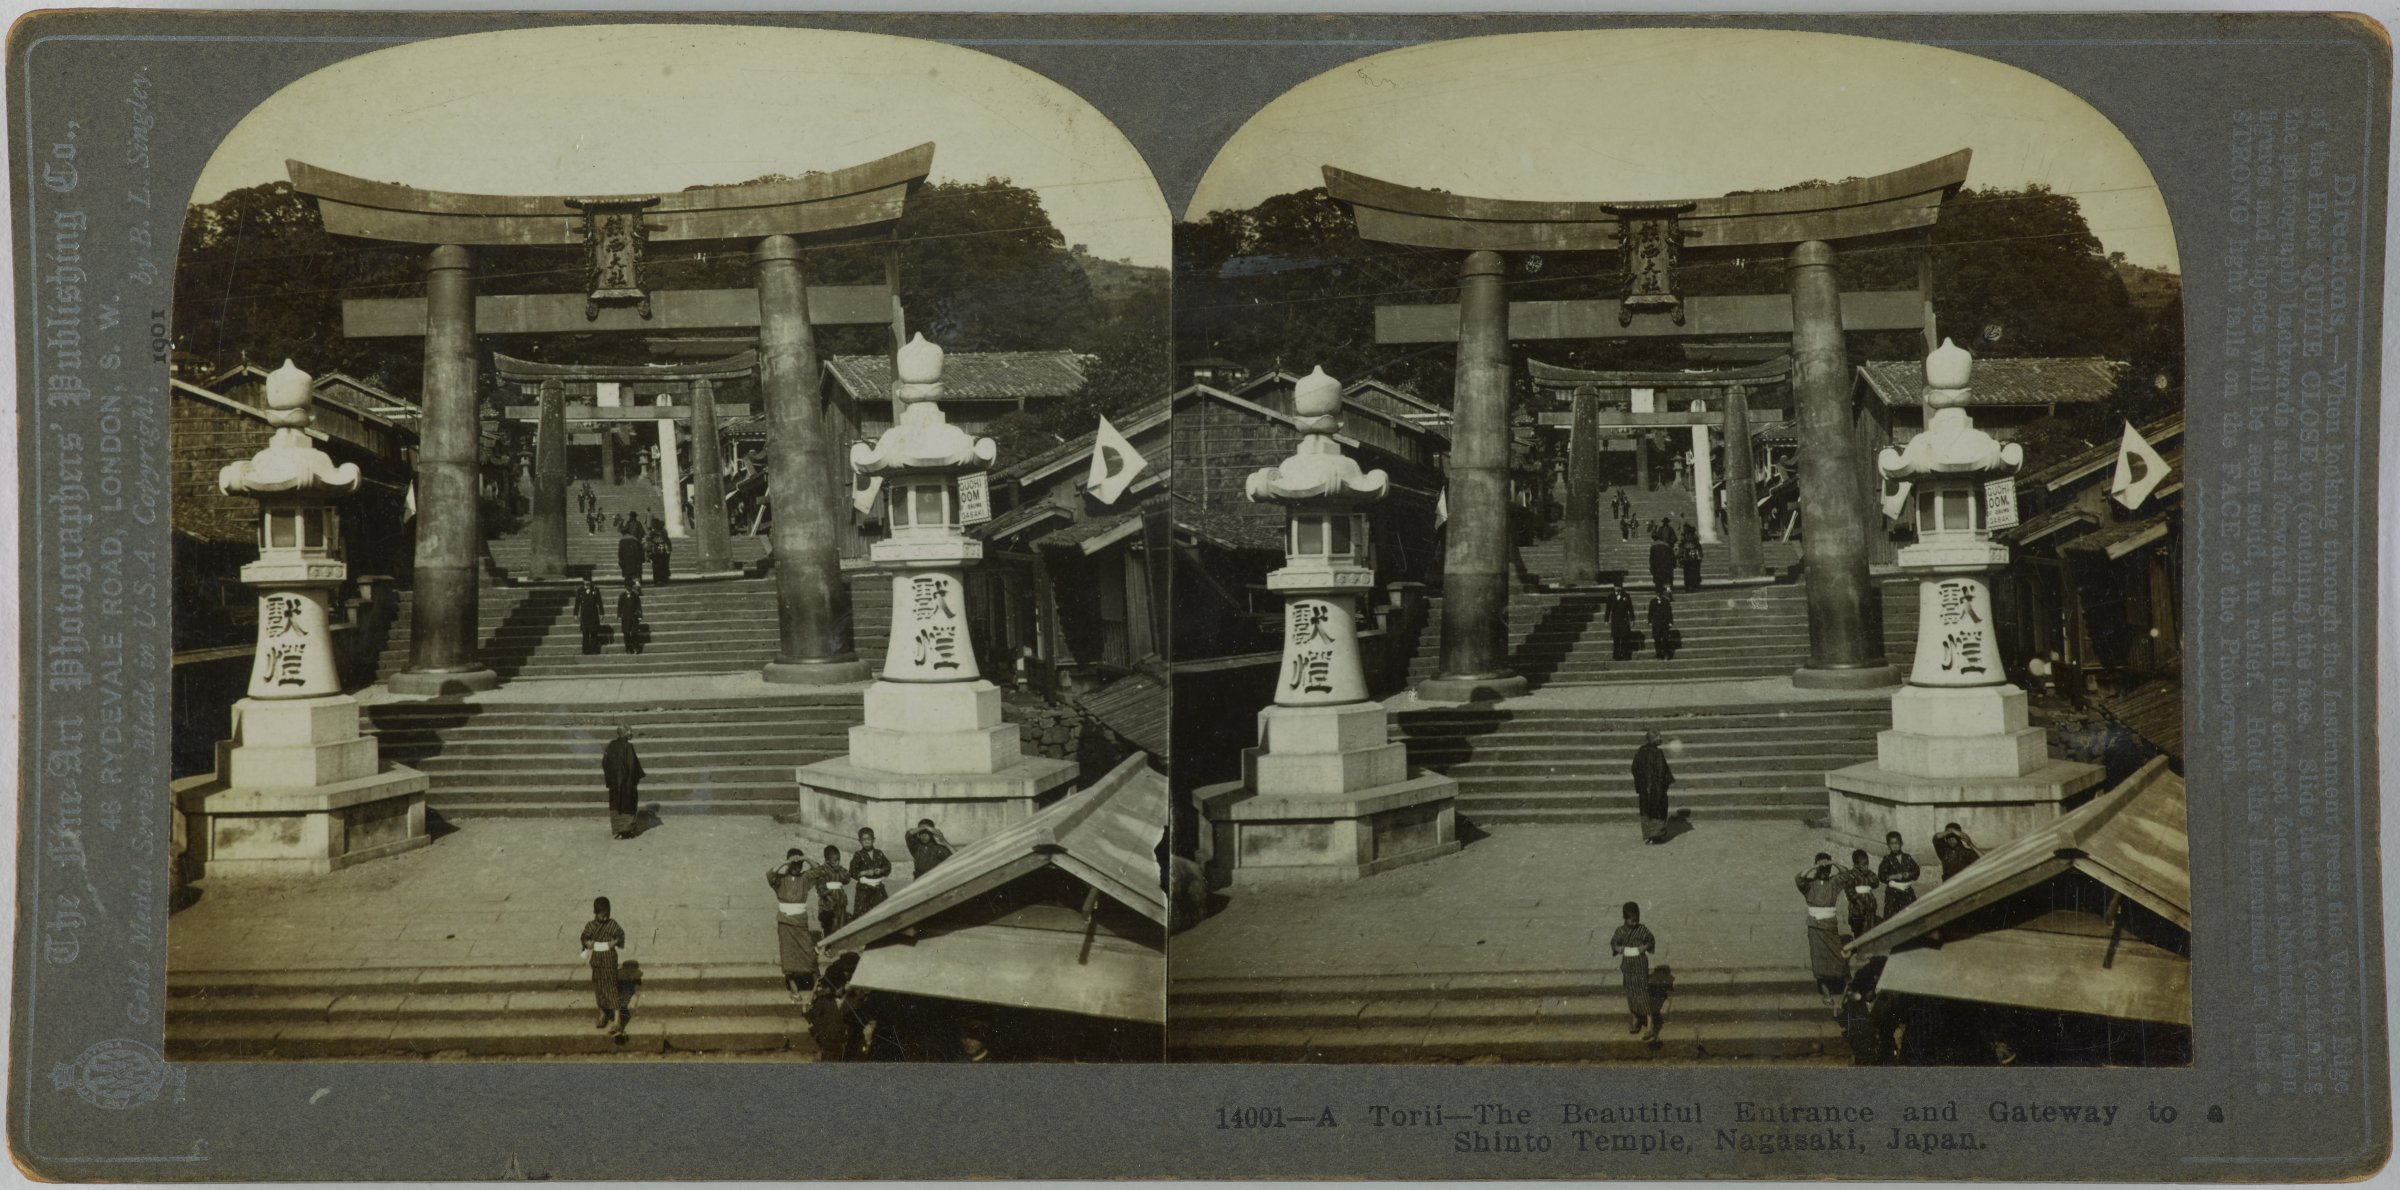 A Torii-The Beautiful Entrance and Gateway to a Shinto Temple, Nagasaki, Japan, The Fine Art Photographer's Publishing Co., gelatin silver prints mounted on card